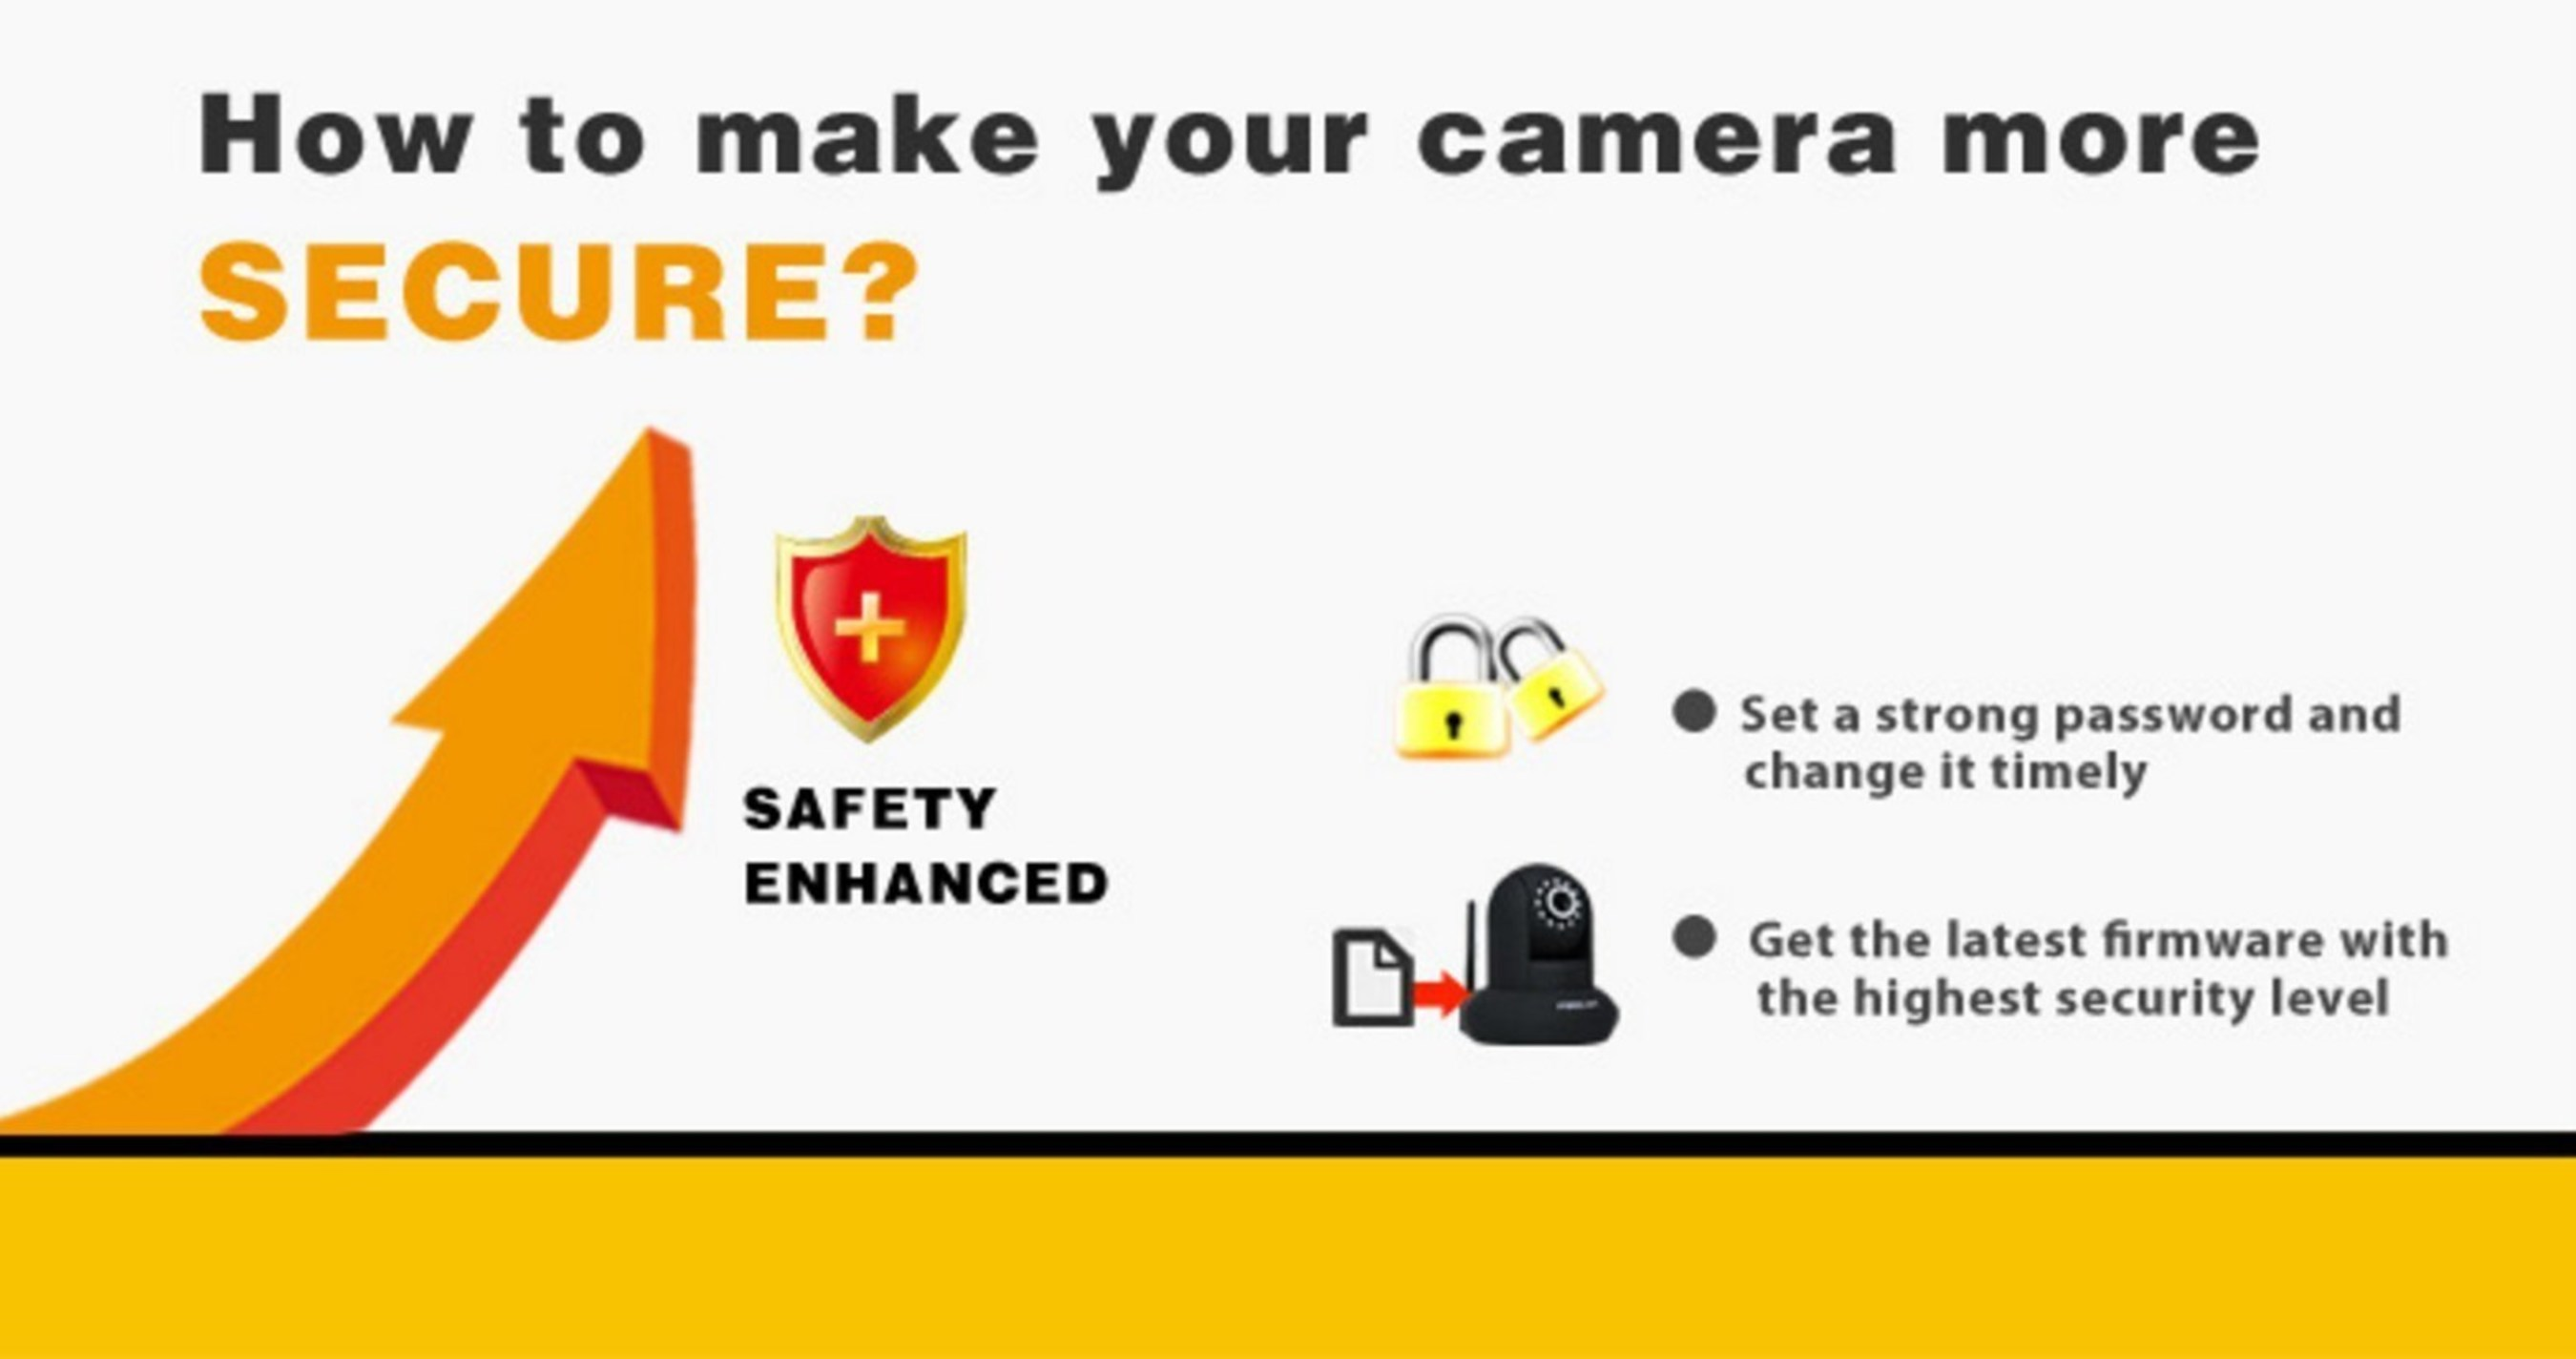 Foscam, a leading high-tech network camera and IP video product solutions company presents five easy steps to secure your IP cameras and privacy. www.foscam.com